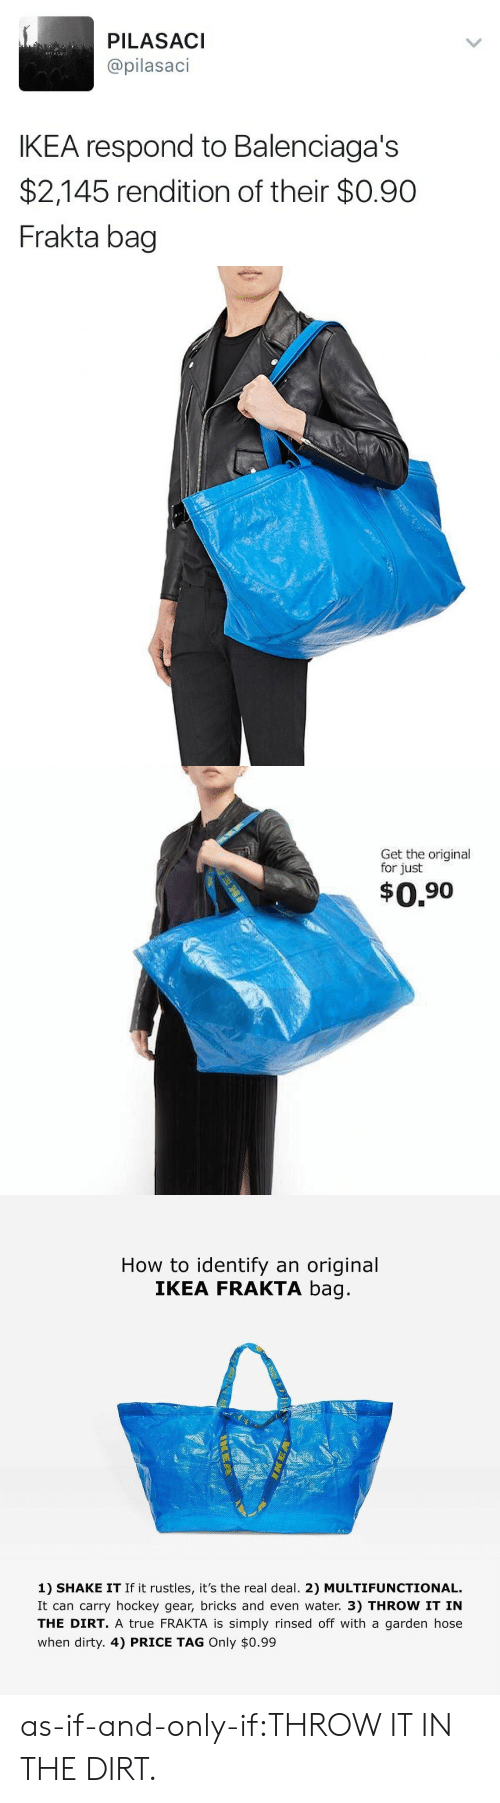 Hockey, Ikea, and Target: PILASACI  @pilasaci  IKEA respond to Balenciaga's  $2,145 rendition of their $0.90  Frakta bag   Get the original  for just  $0.90   How to identify an original  IKEA FRAKTA bag  1) SHAKE IT If it rustles, it's the real deal. 2) MULTIFUNCTIONAL.  It can carry hockey gear, bricks and even water. 3) THROW IT IN  THE DIRT. A true FRAKTA is simply rinsed off with a garden hose  when dirty. 4) PRICE TAG Only $0.99 as-if-and-only-if:THROW IT IN THE DIRT.